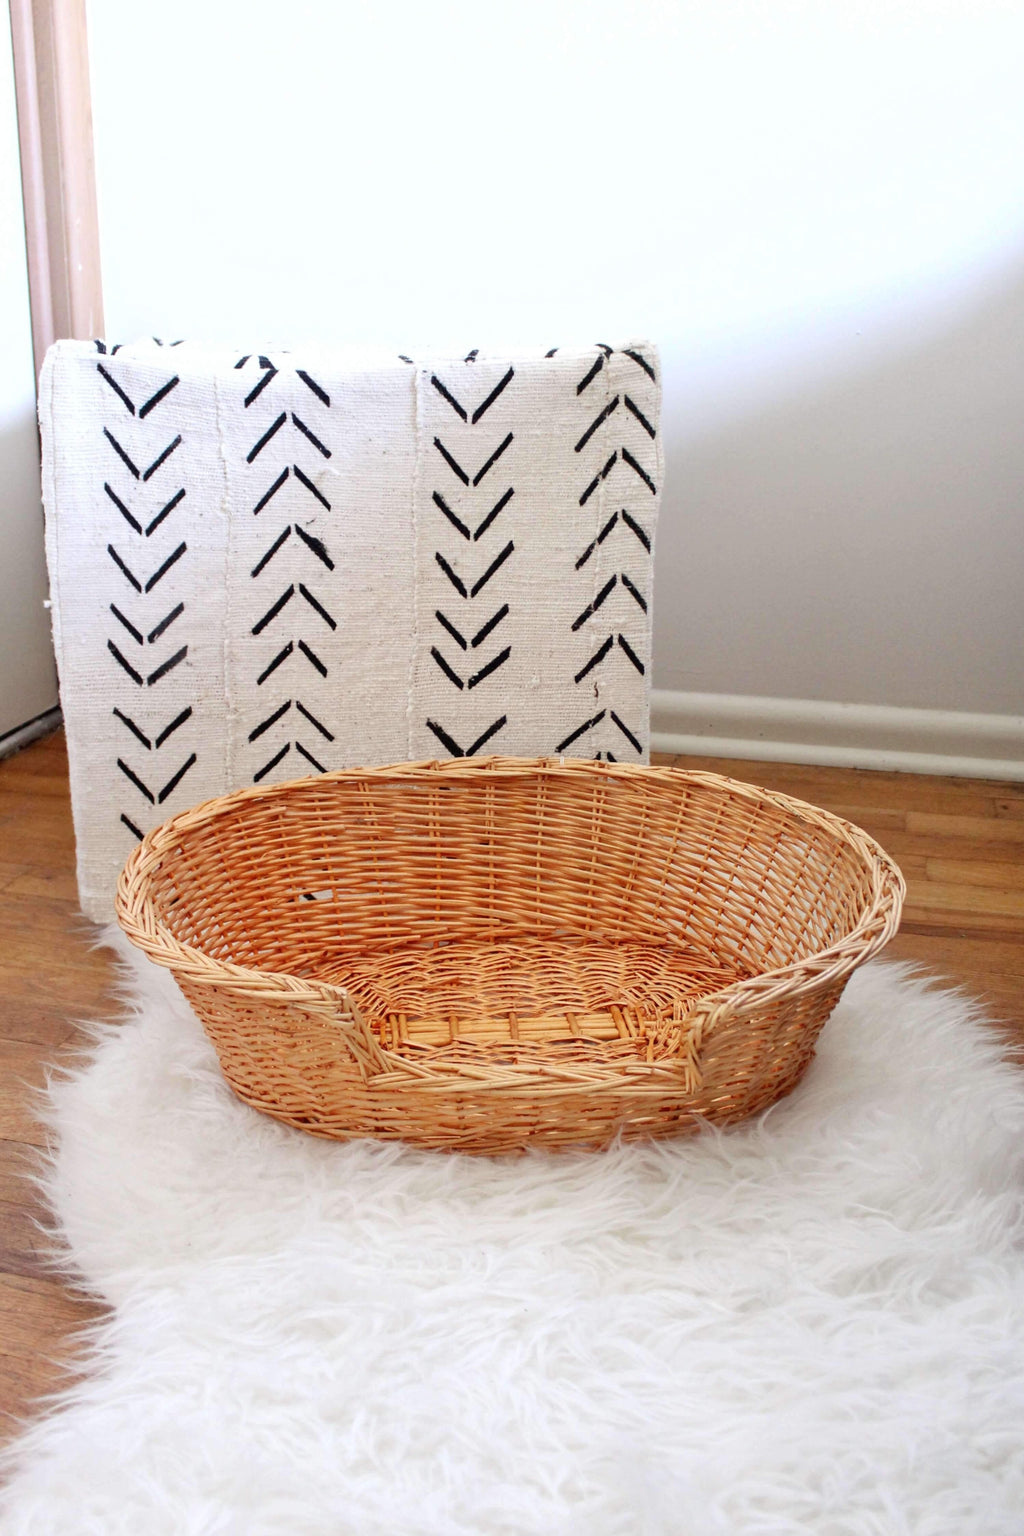 Wicker Pet Bed, Home Decor, Room Decor, Home Accessories - elizabeth o. vintage